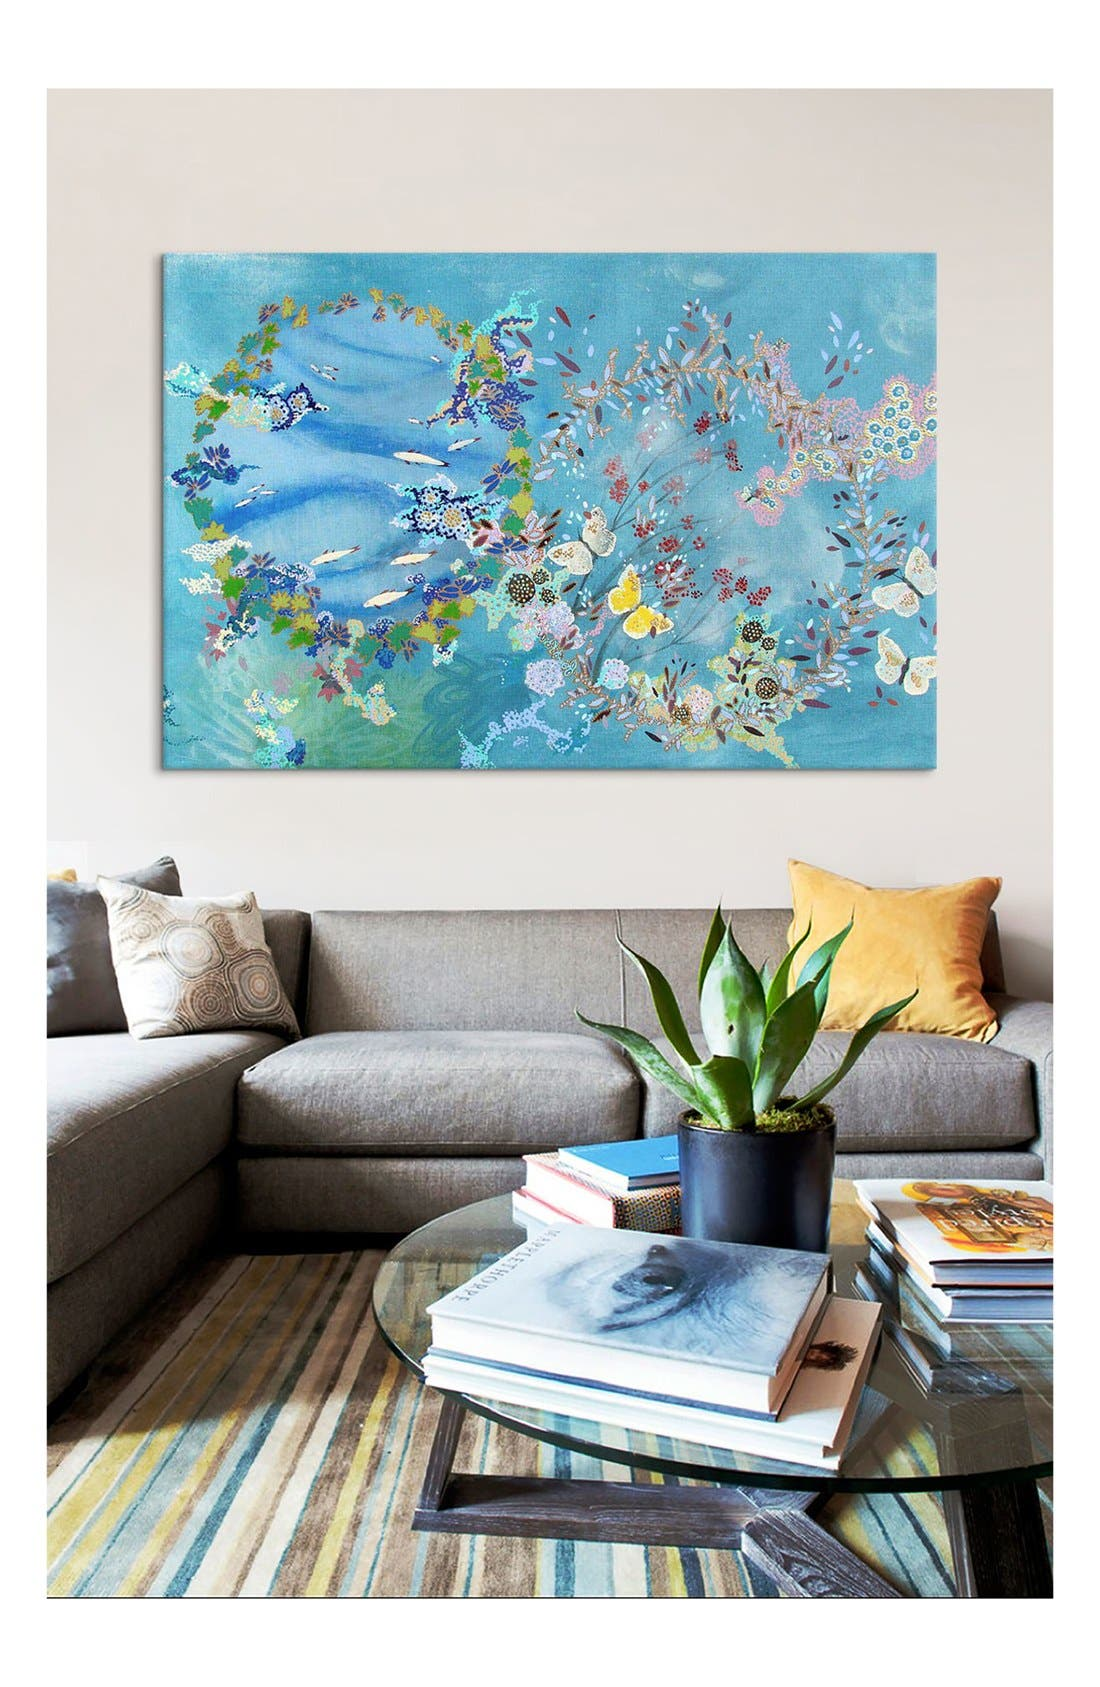 'Agua Y Aire - Lia Porto' Giclée Print Canvas Art,                             Alternate thumbnail 2, color,                             Blue/ Multi